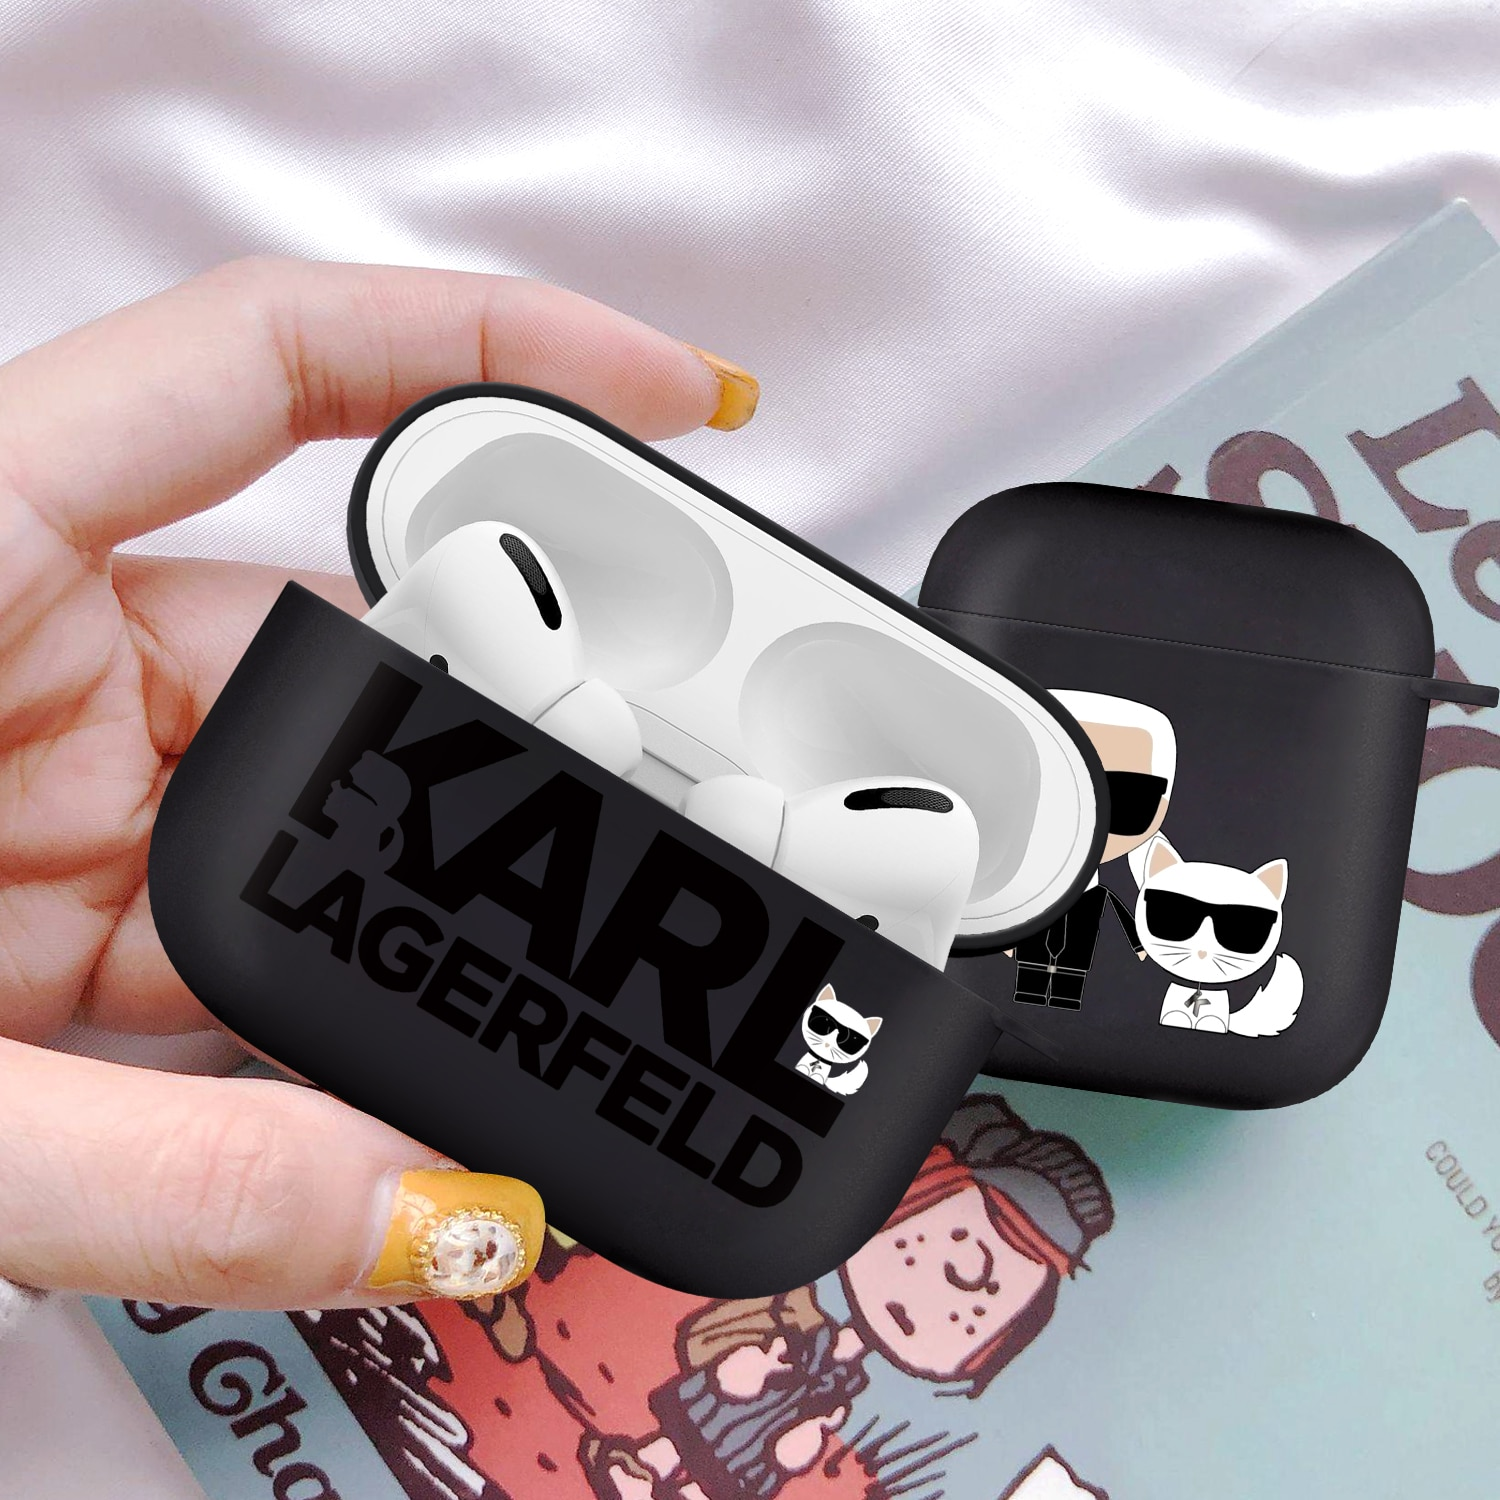 Soft Silicone Cases For Apple Airpods 2/1 Fashion Brand designer Wireless Earphone Cover For AirPods